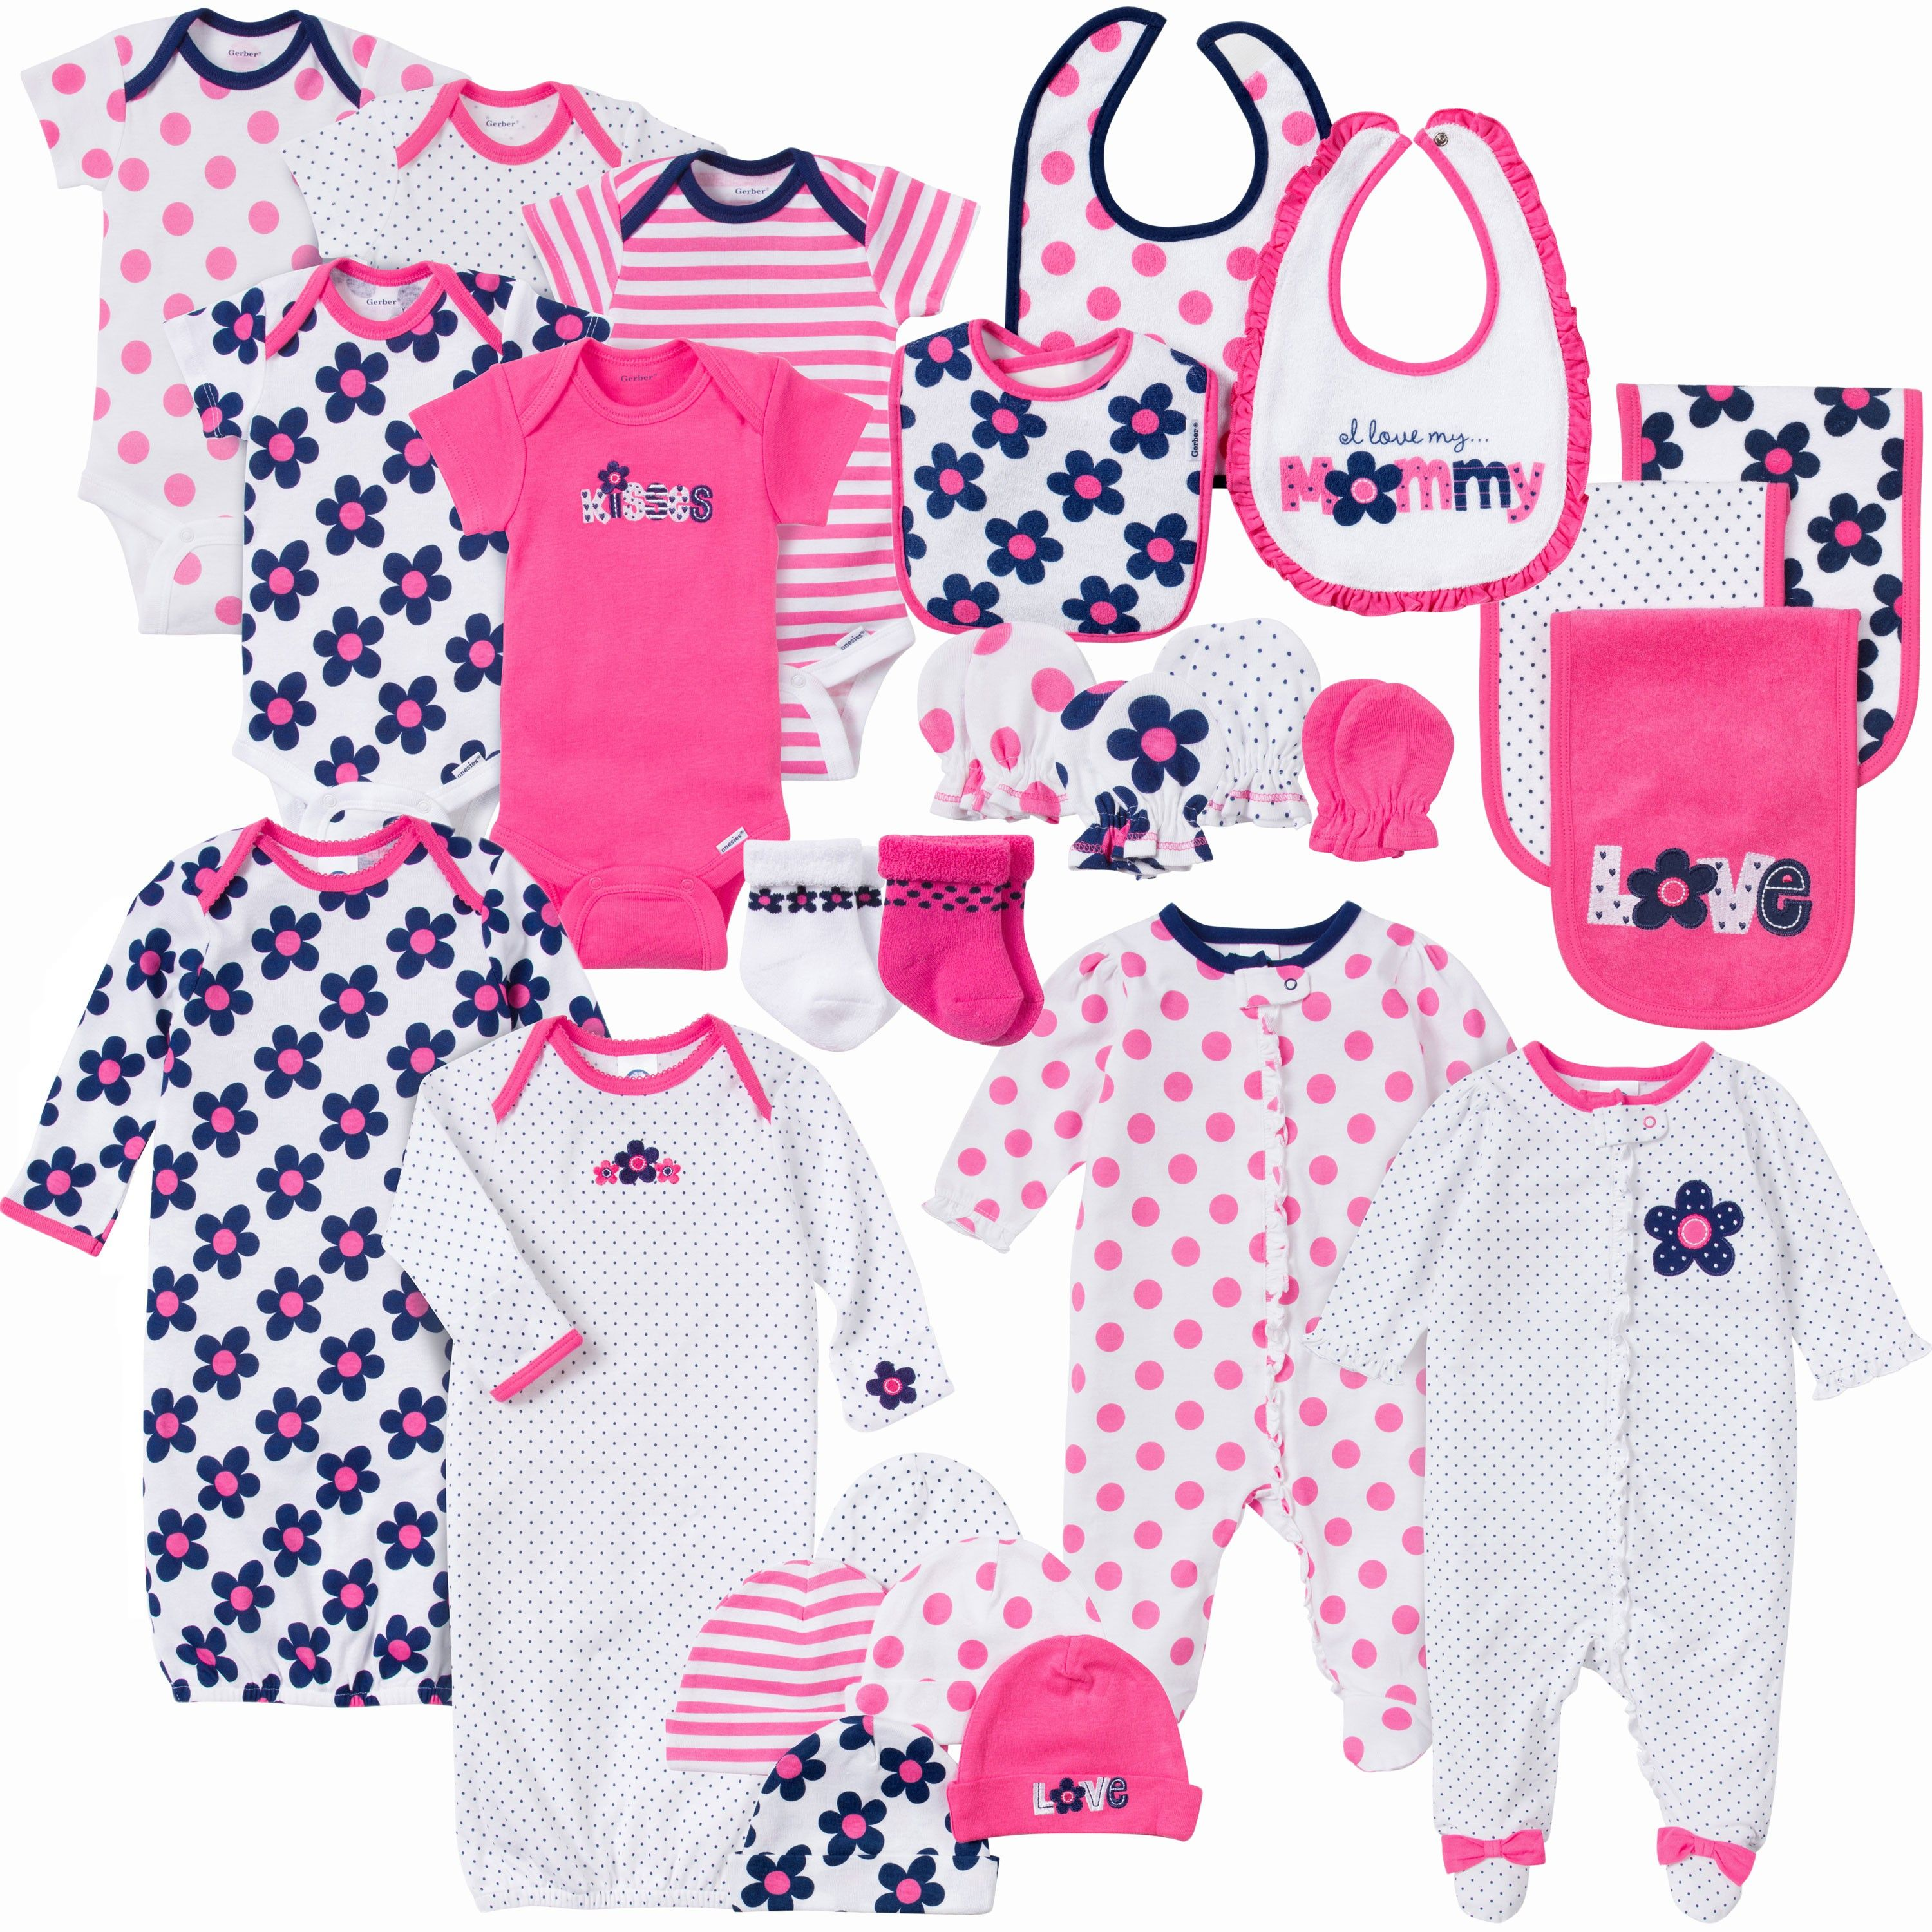 Full of all the essentials for baby girl! This 26-piece set includes ...